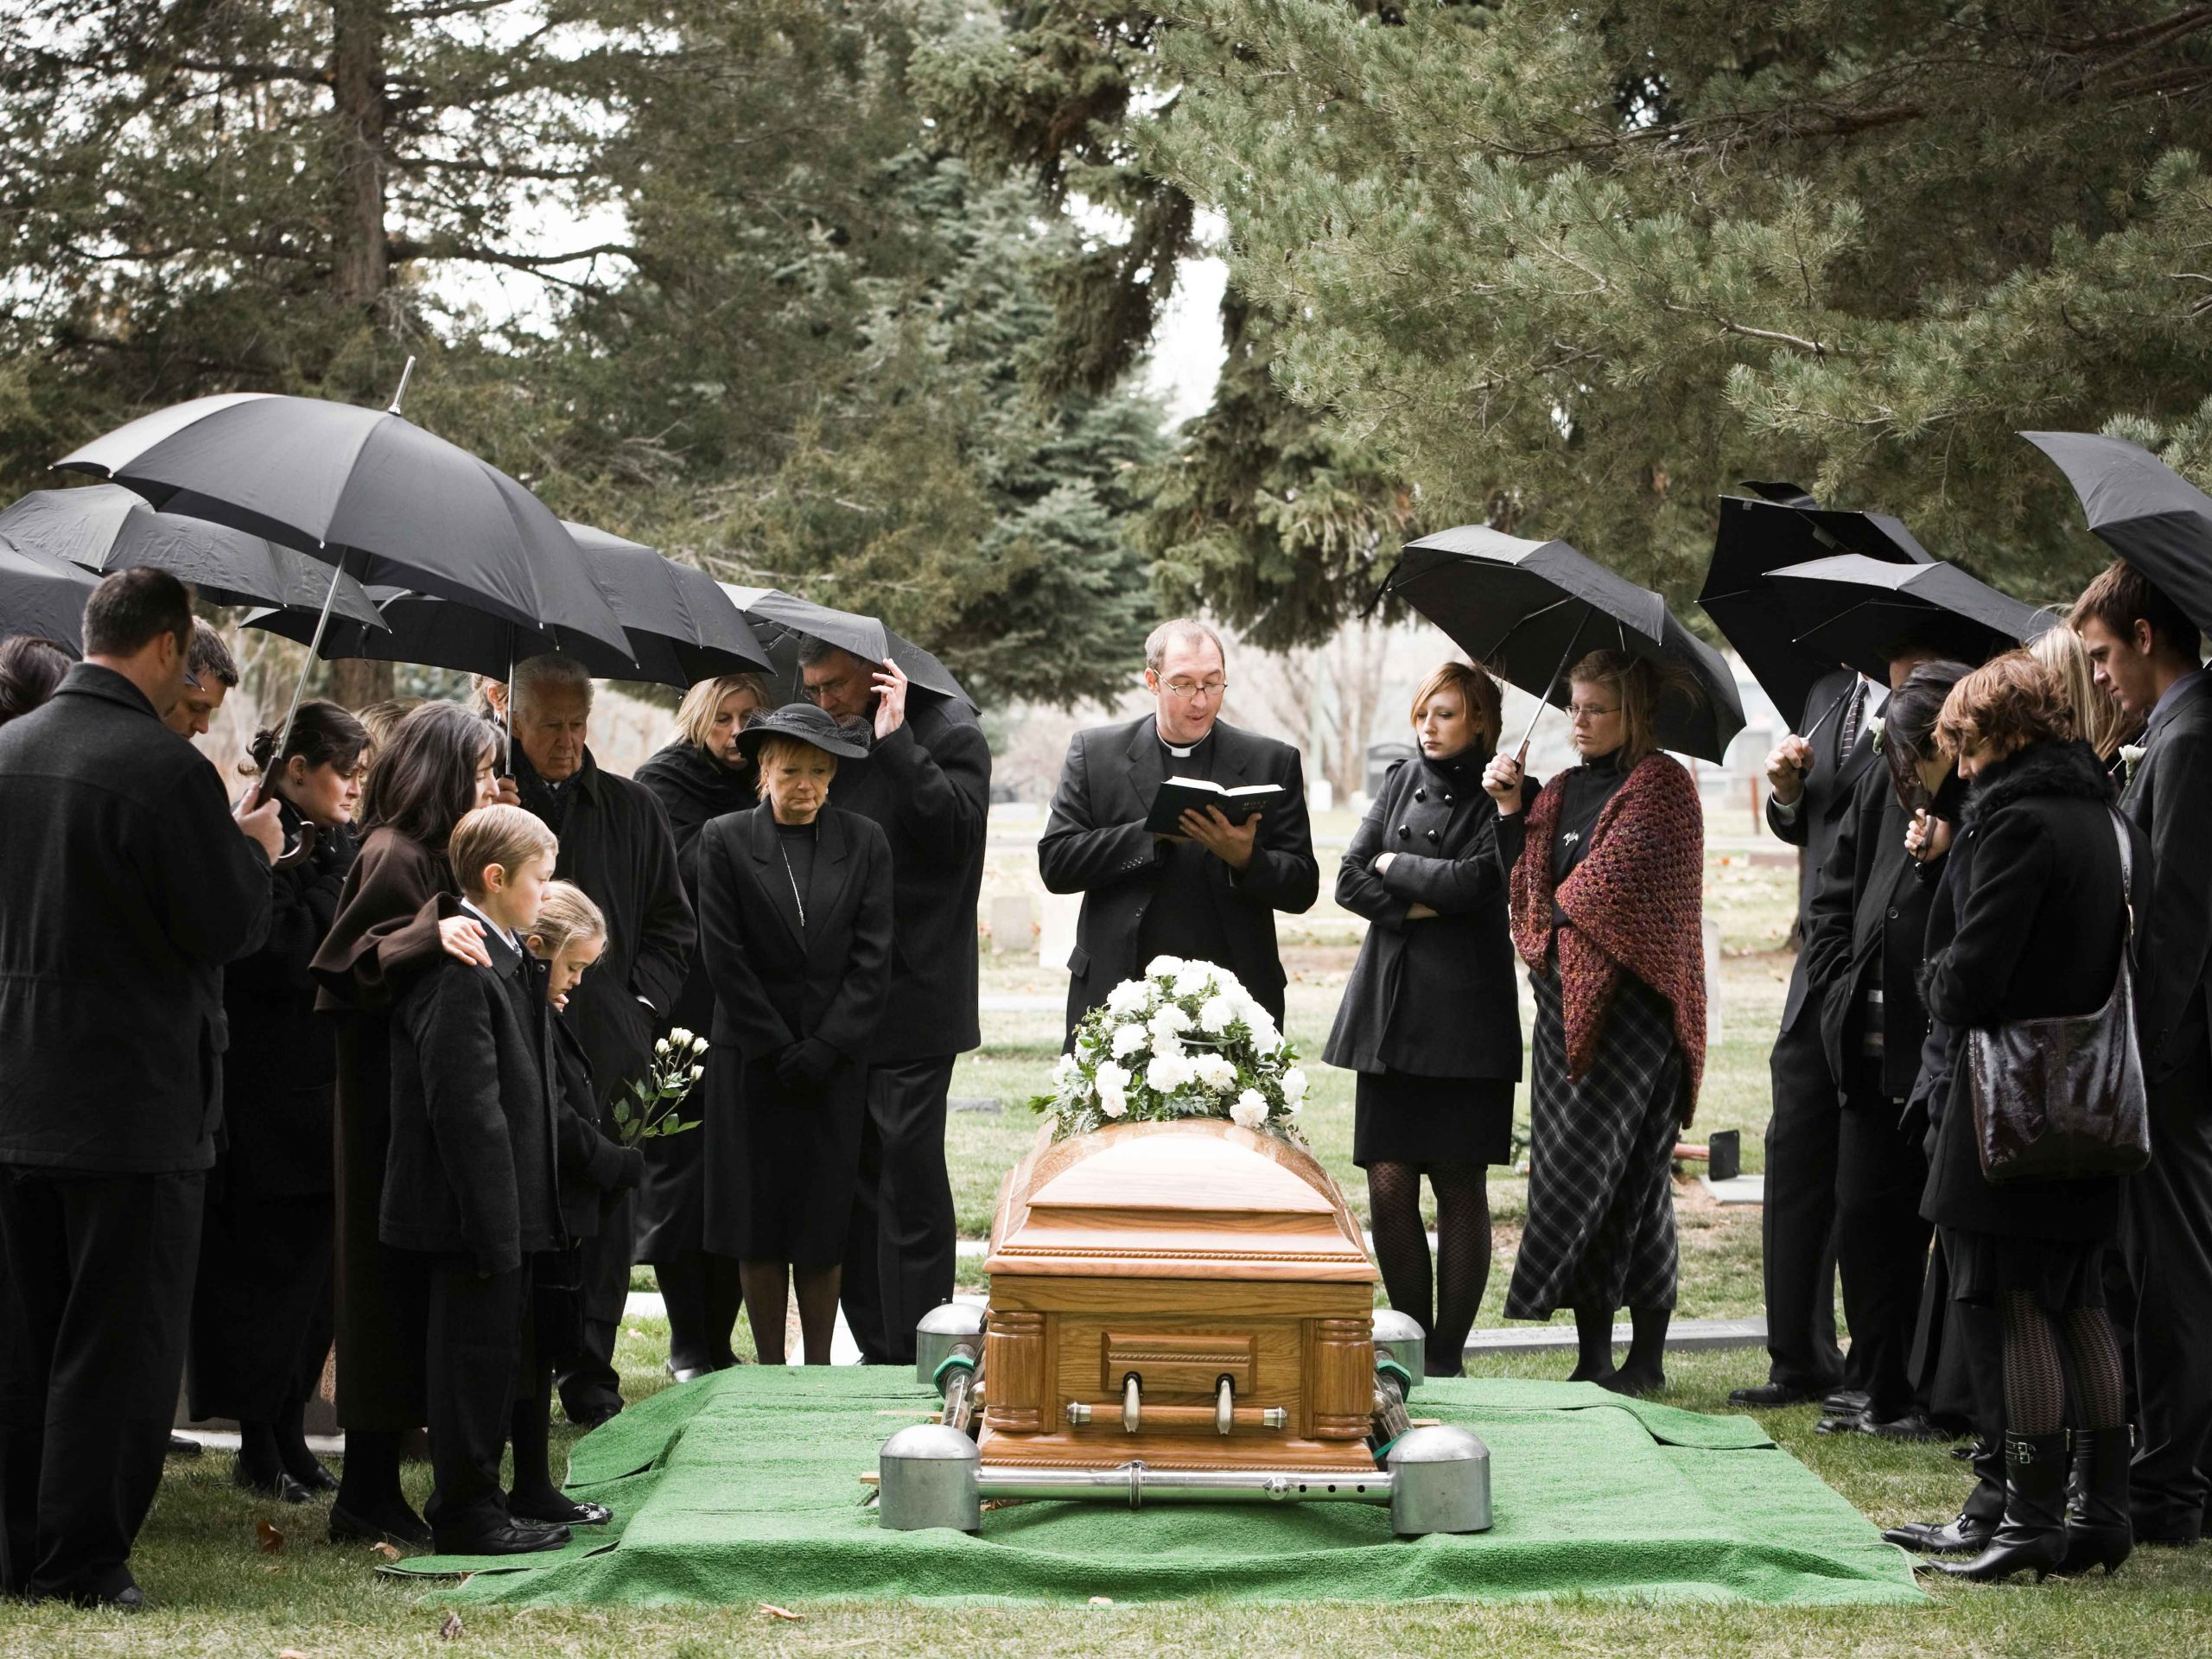 The funeral industry begins to bury tradition – The New Economy